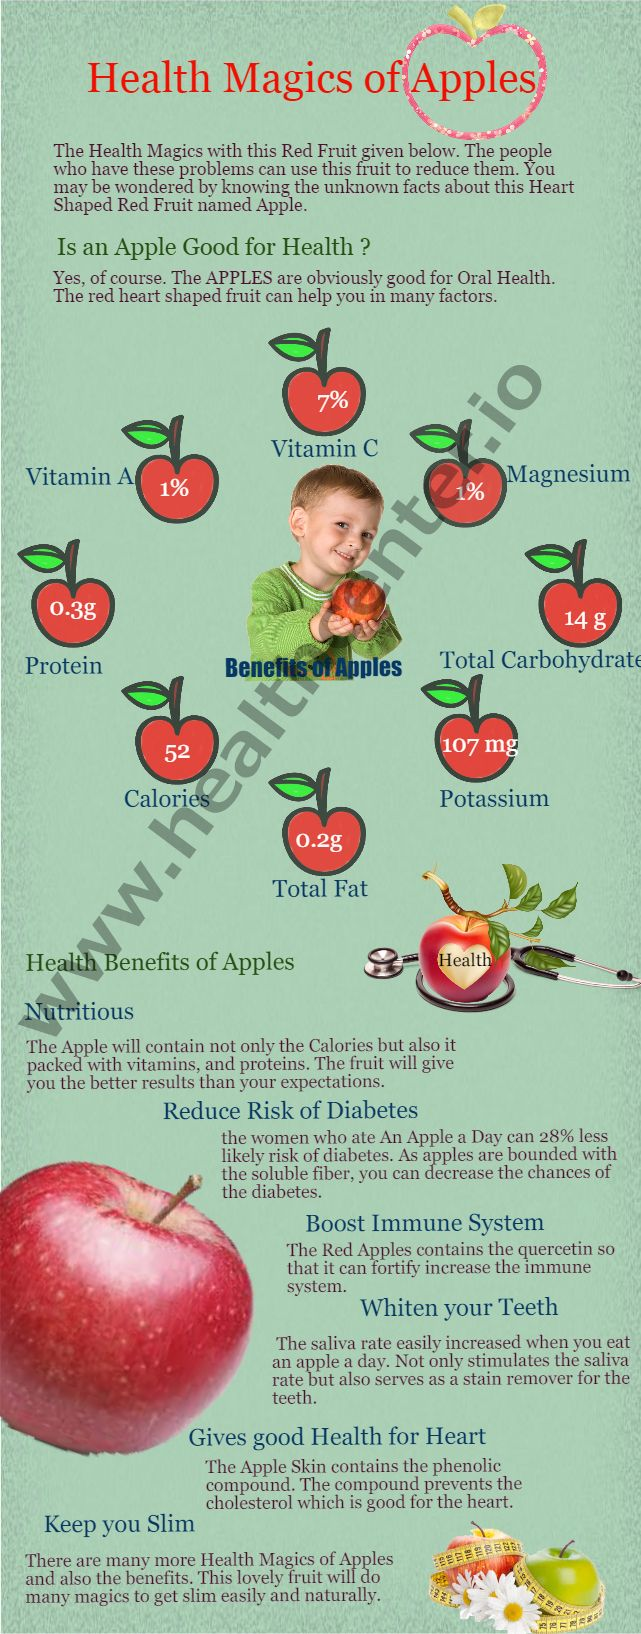 Health Magics of Apples Image Apple benefits, Red